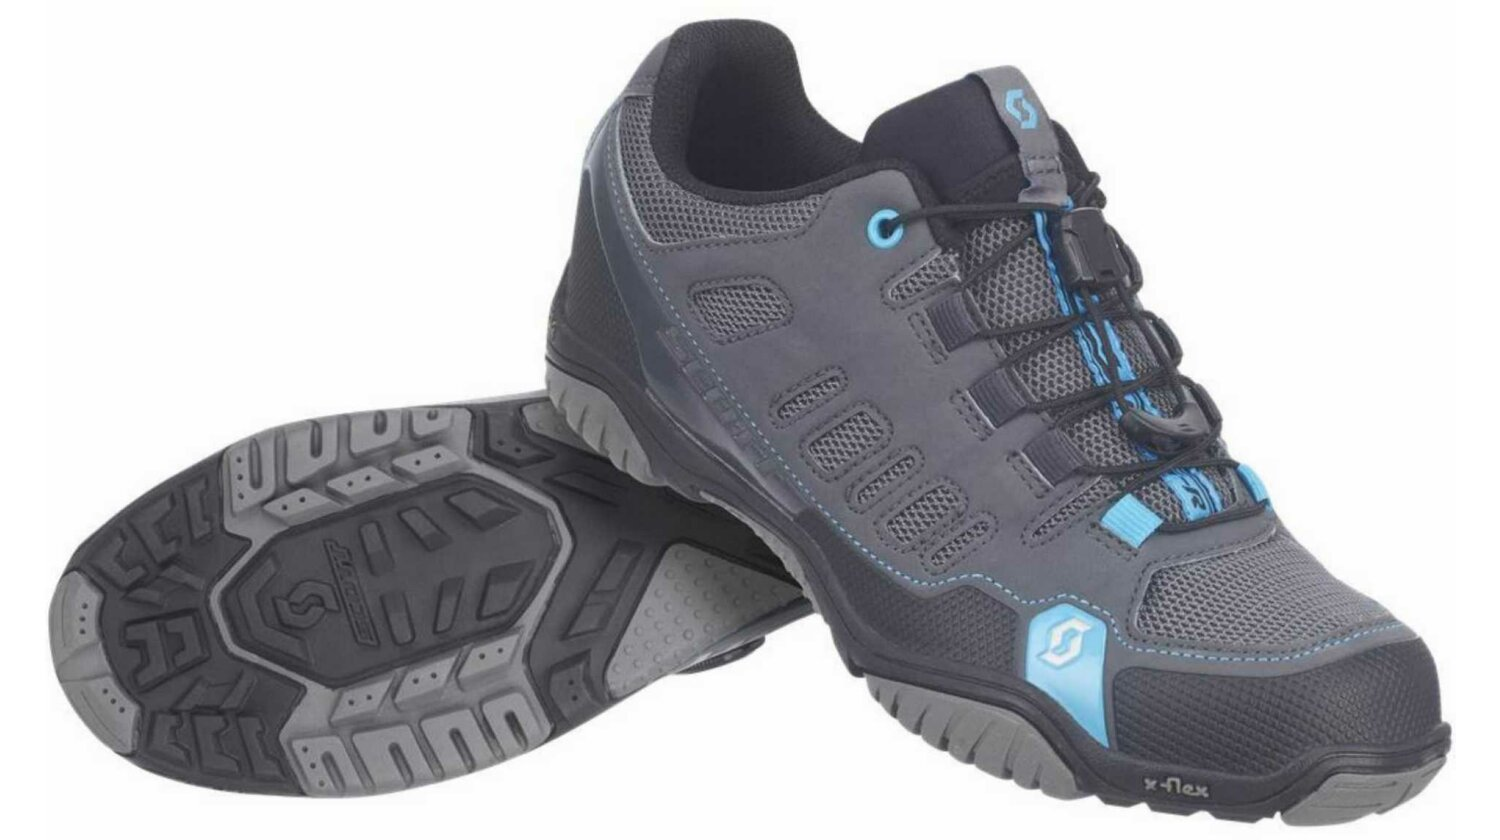 Scott Crus-r Lady Schuh anthracite/neon blue 37